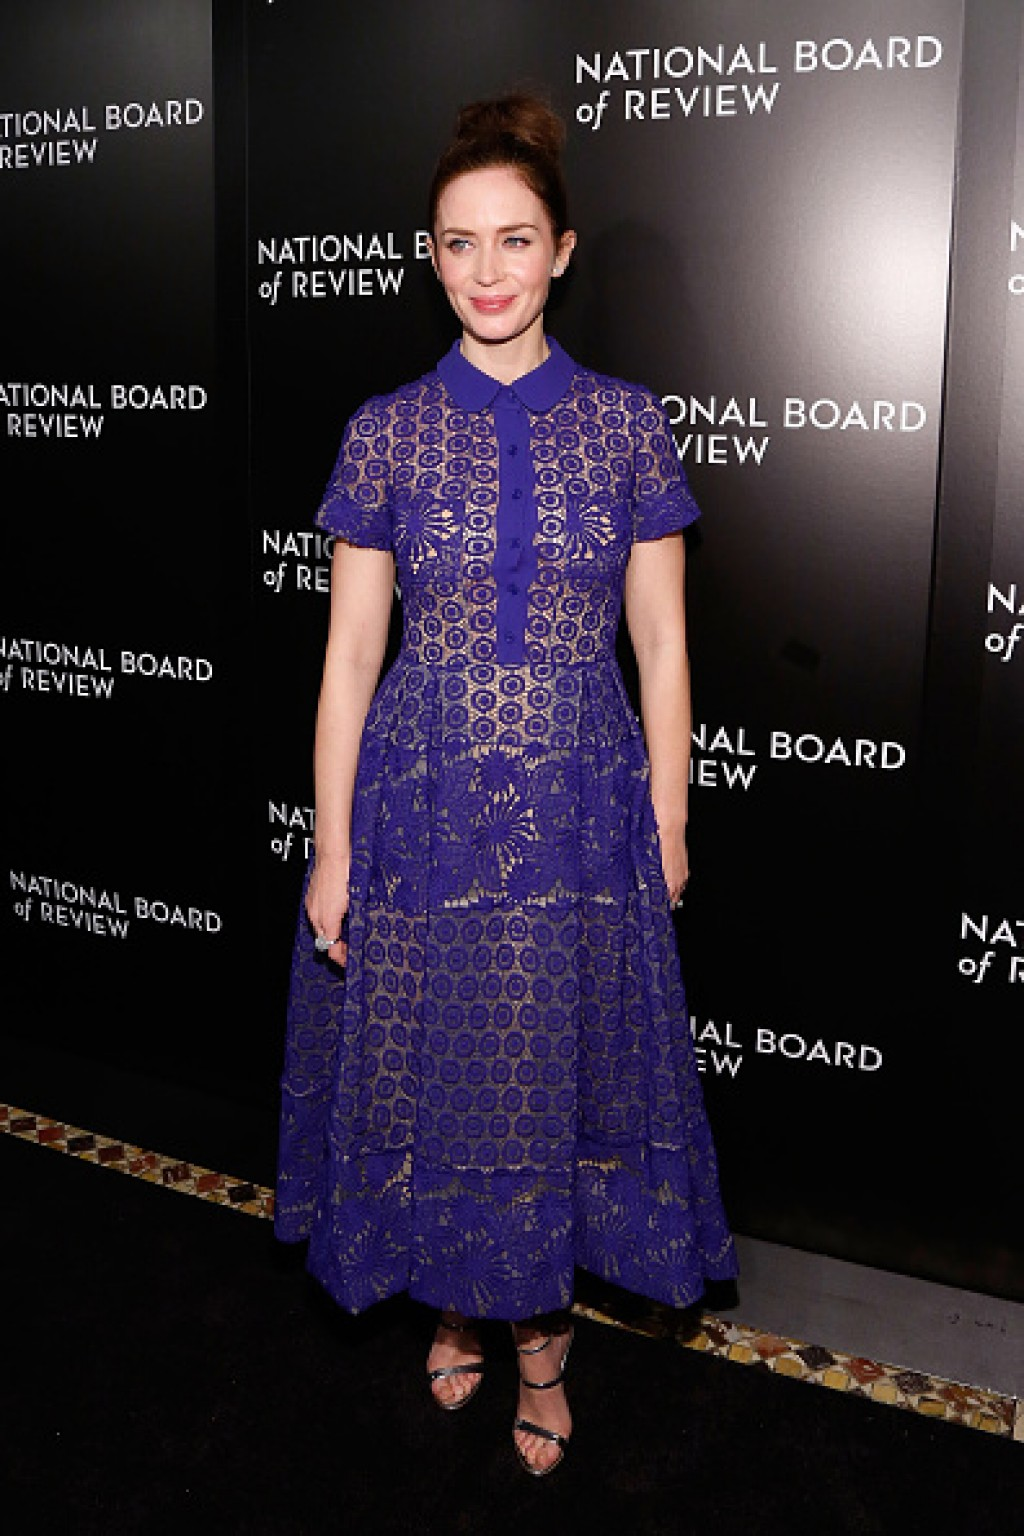 Emily-Blunt-016-National-Board-of-Review-Gala-Elie-Saab-1024x1536